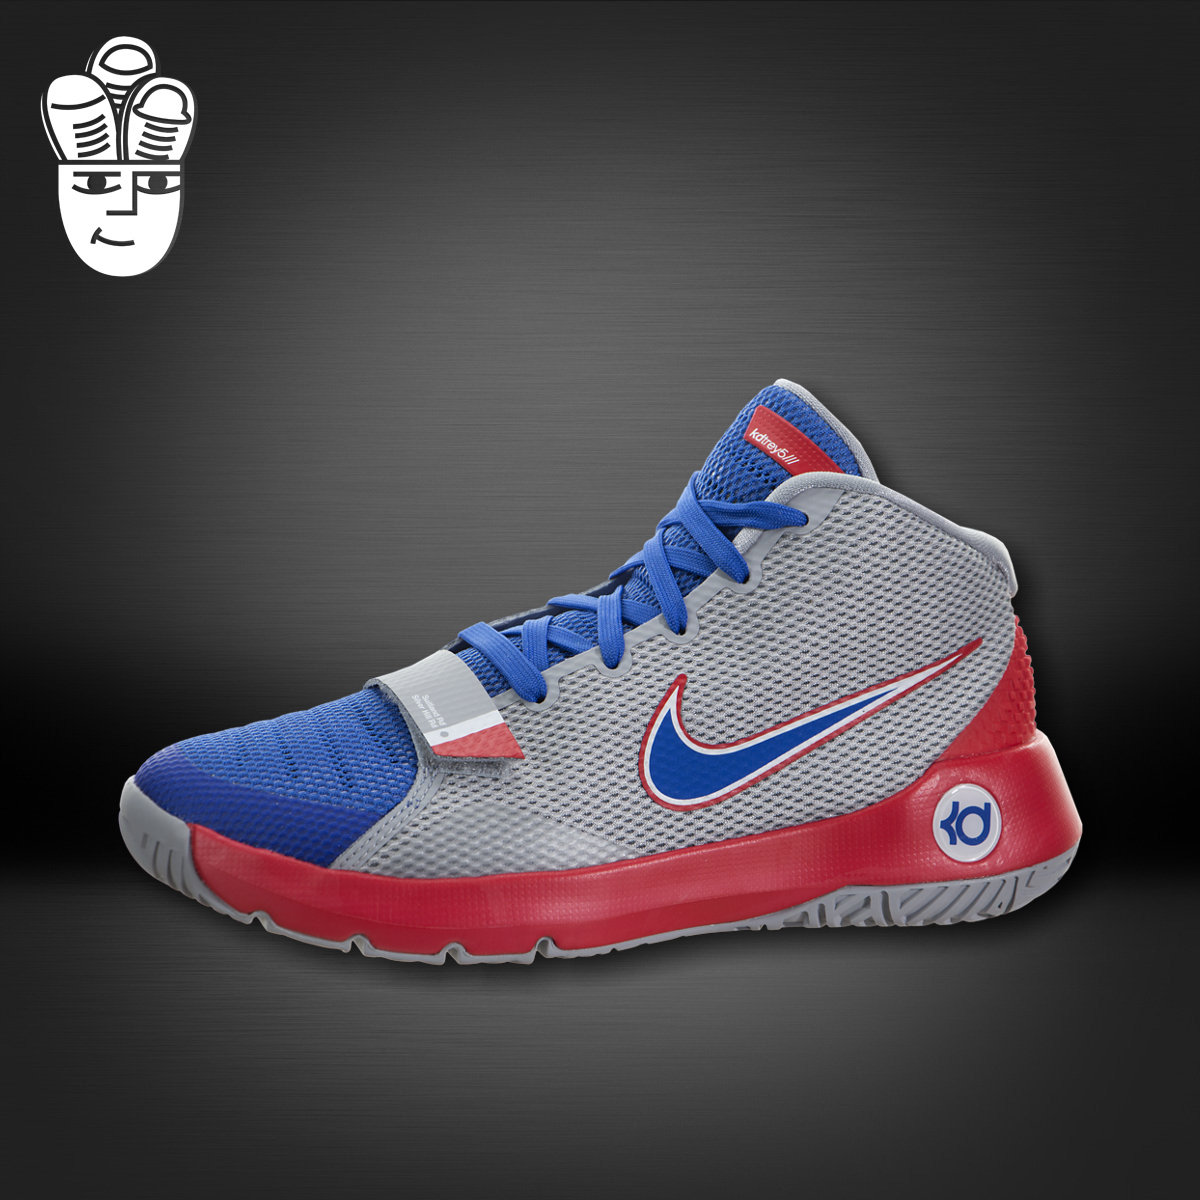 save off d3200 56c3e Buy Nike kd trey 5  Acirc  nbsp vii (kids) durant nike basketball shoes for  men and women series in Cheap Price on m.alibaba.com